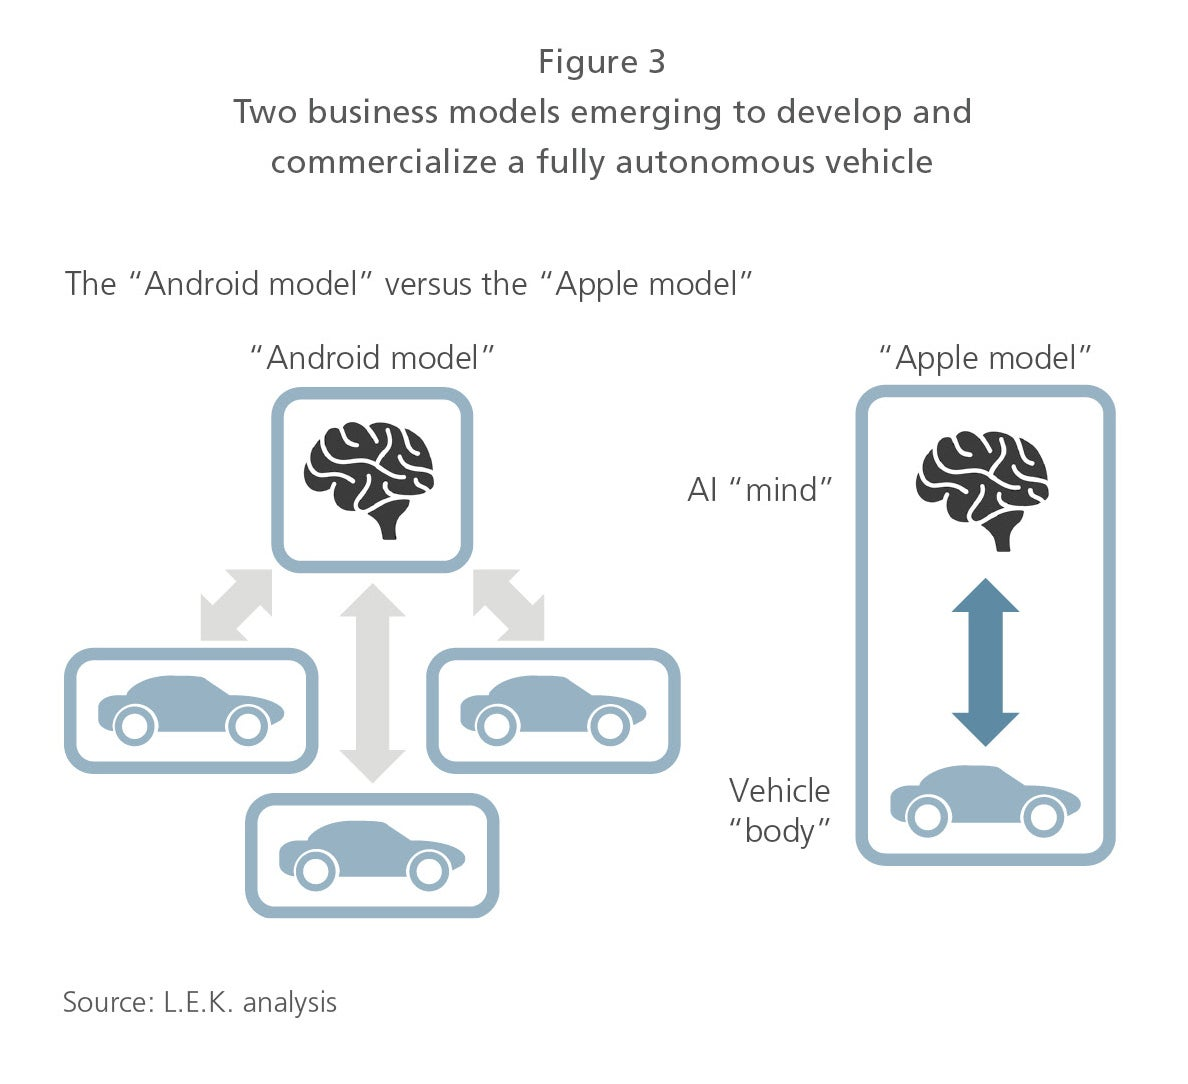 Two business models emerging to develop and commercialize a fully autonomous vehicle